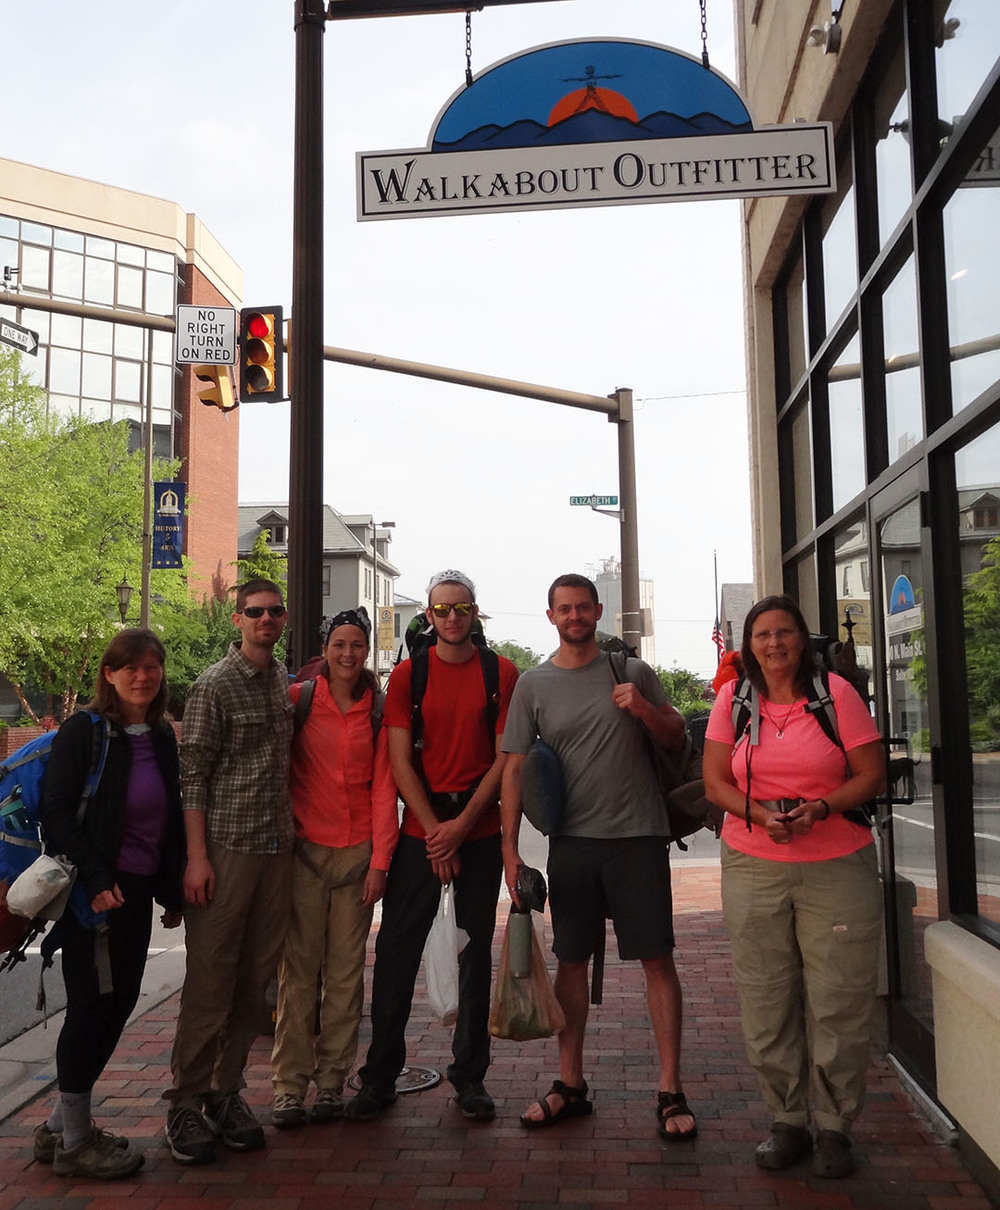 Vince Mier (pictured second to right) gearing up for a recent backpacking trip to Seneca creek trail in west virginia with harrisonburg area hikers of all skill levels.